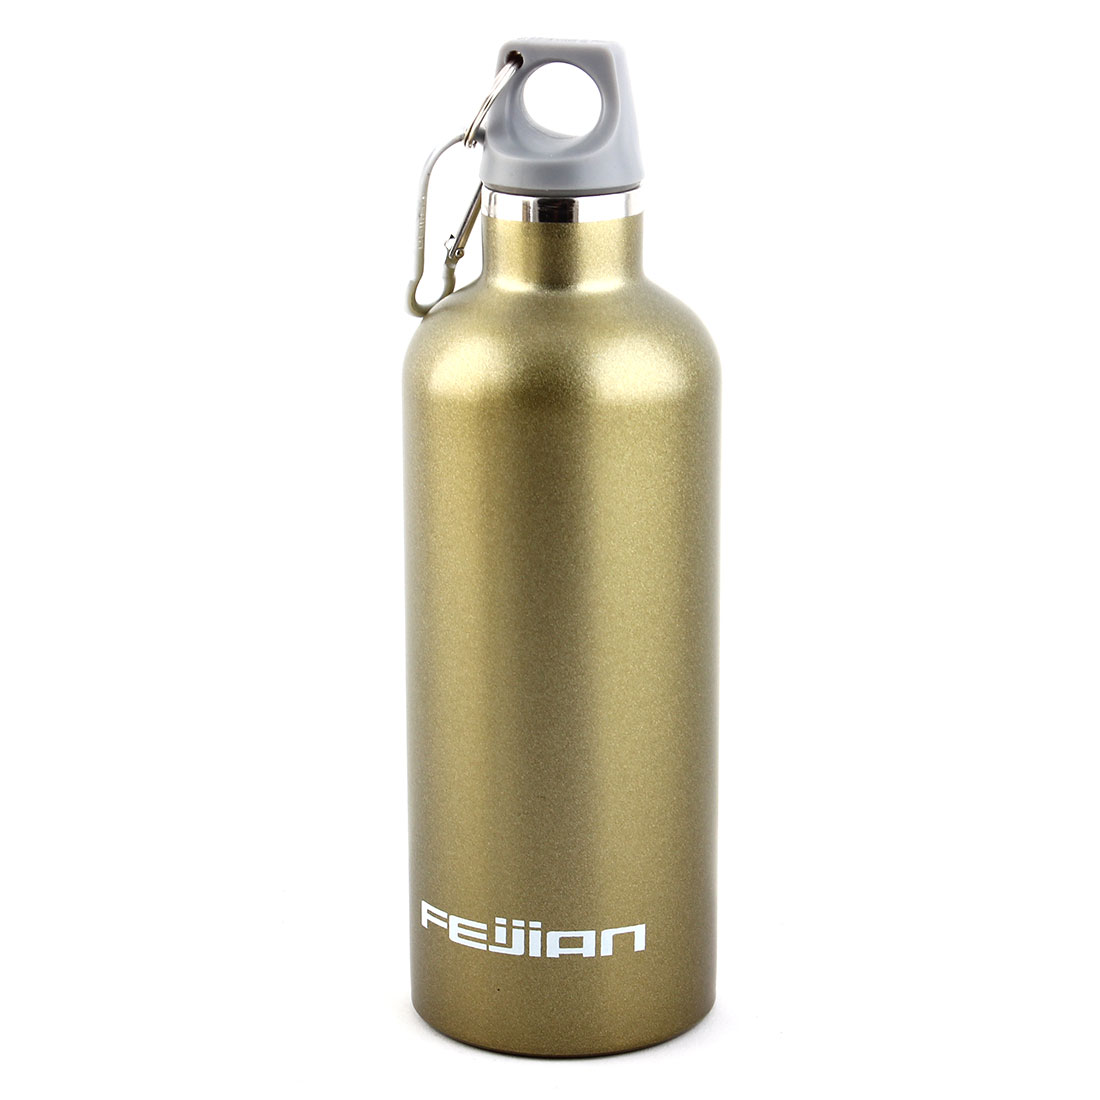 FEIJIAN Authorized Outdoor Sports Stainless Steel Double Walled Vacuum Insulated Mug Drinks Bottle Olive Green 17 oz 500ml